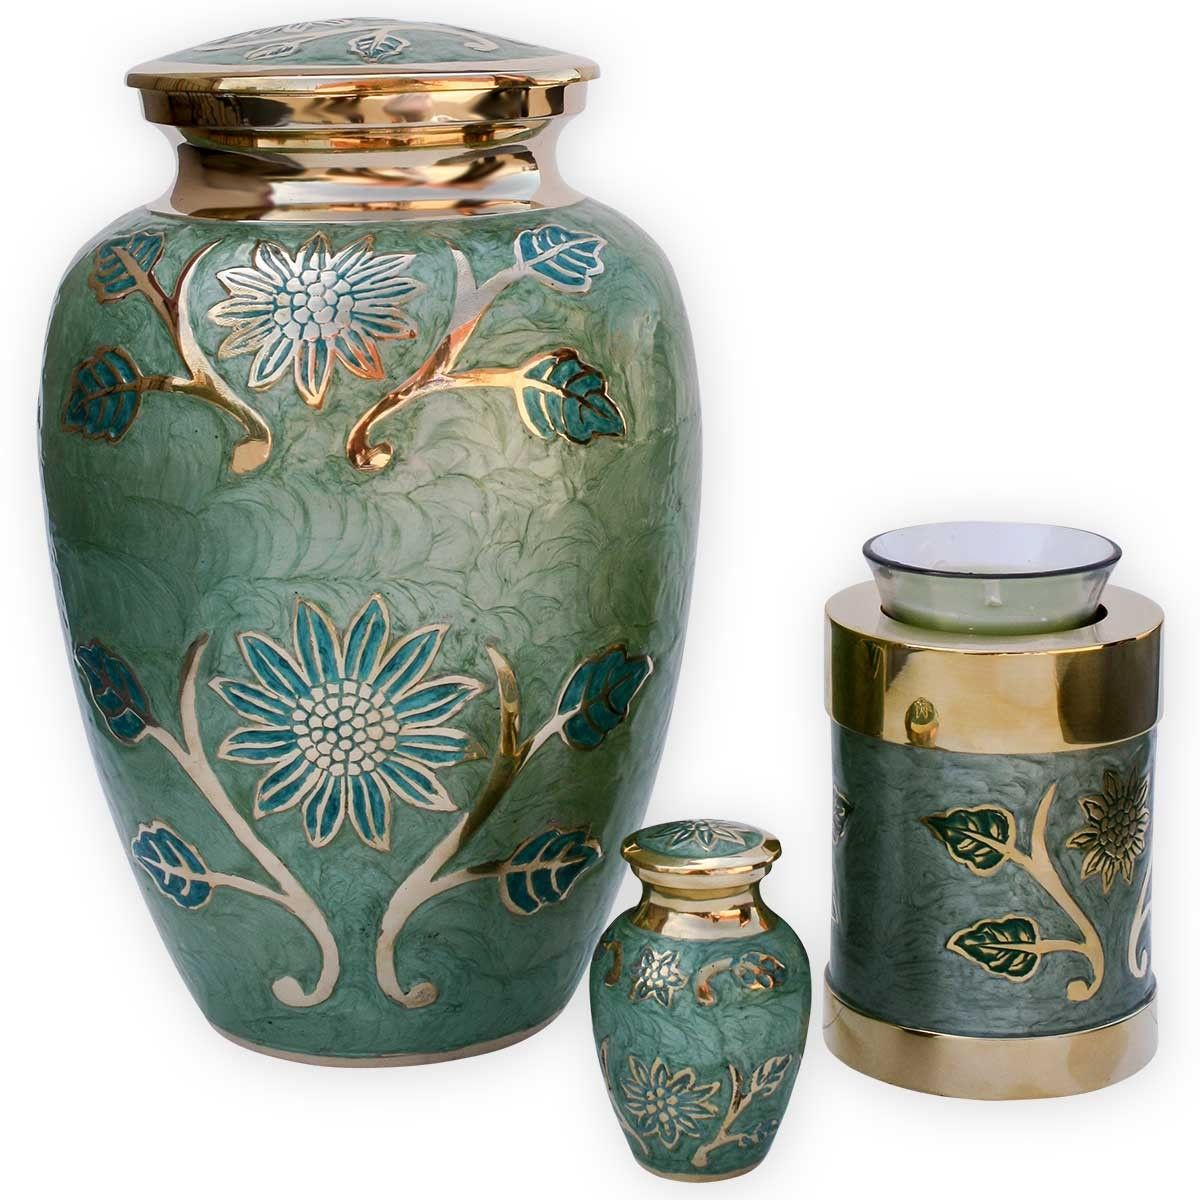 Cremation Urns Beautiful Urns for Ashes Green garden